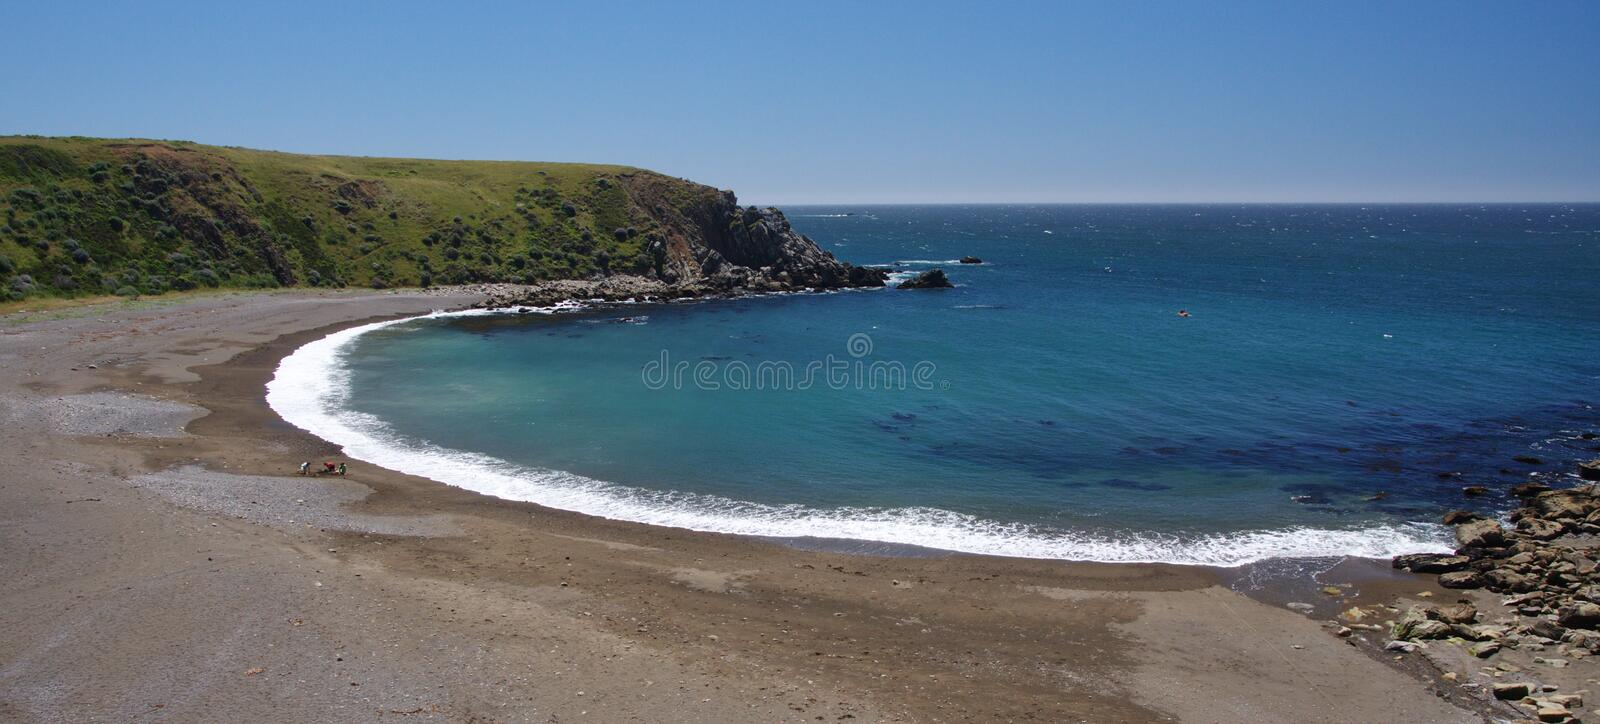 Cove at Fort Ross, California Pacific coast royalty free stock photo